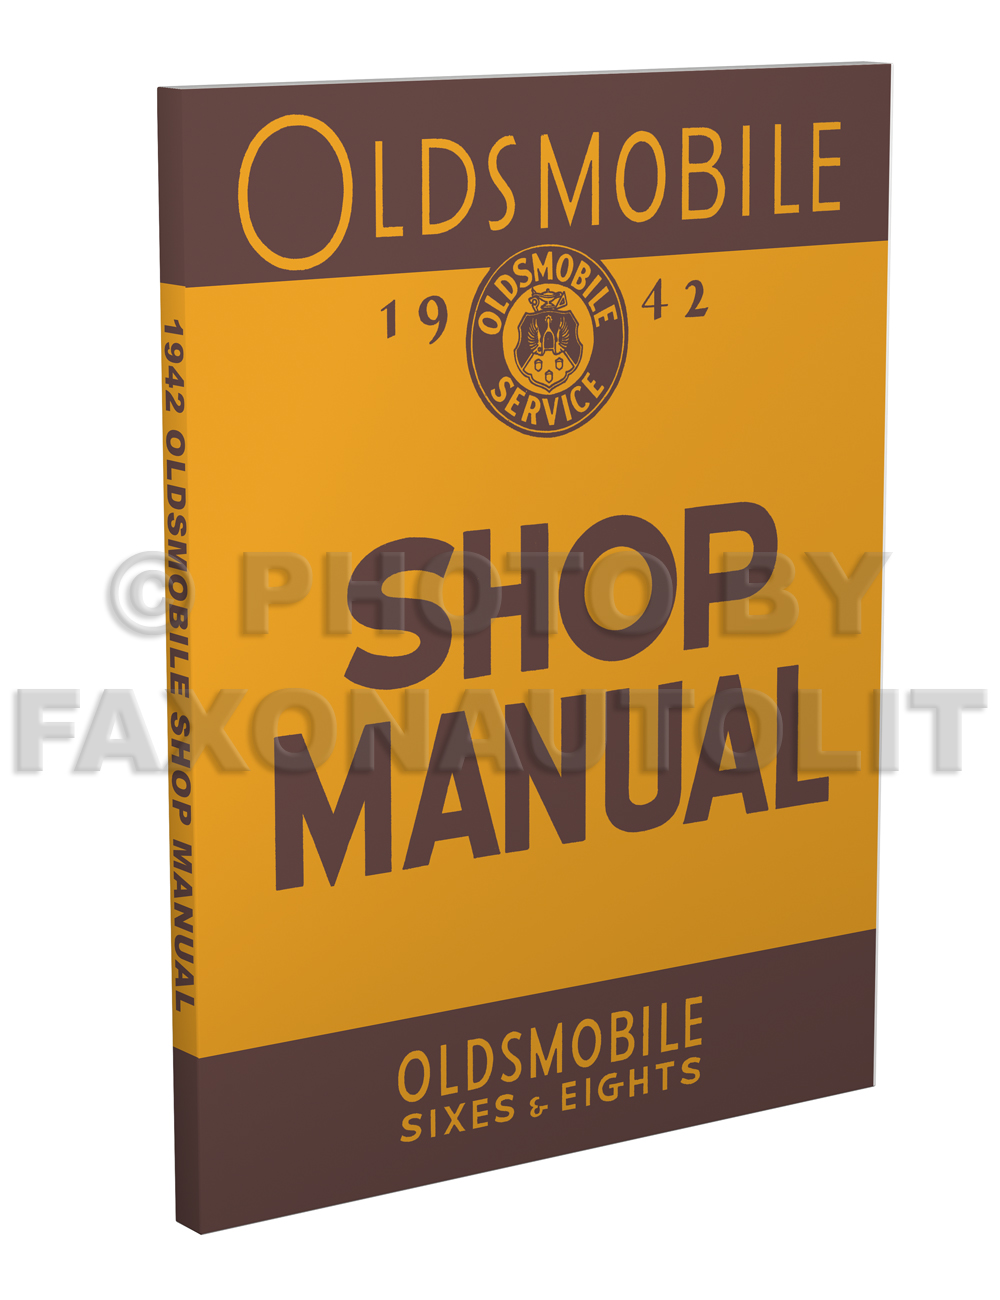 1942 Oldsmobile Repair Manual Original 8 1/2 x 11""